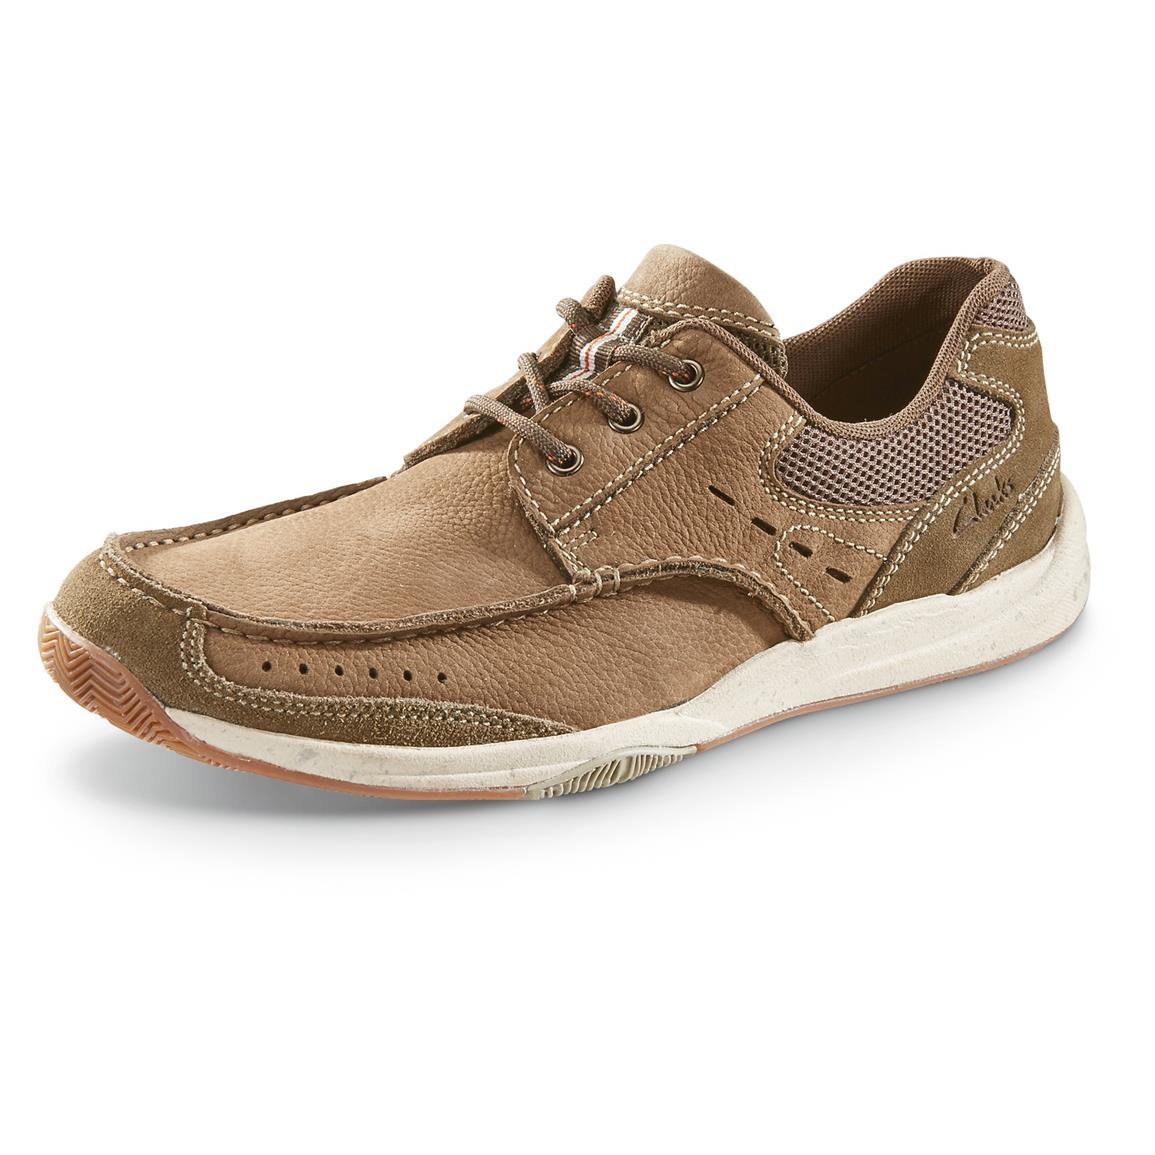 Clarks Allston Edge Casual Shoes, Olive Nubuck